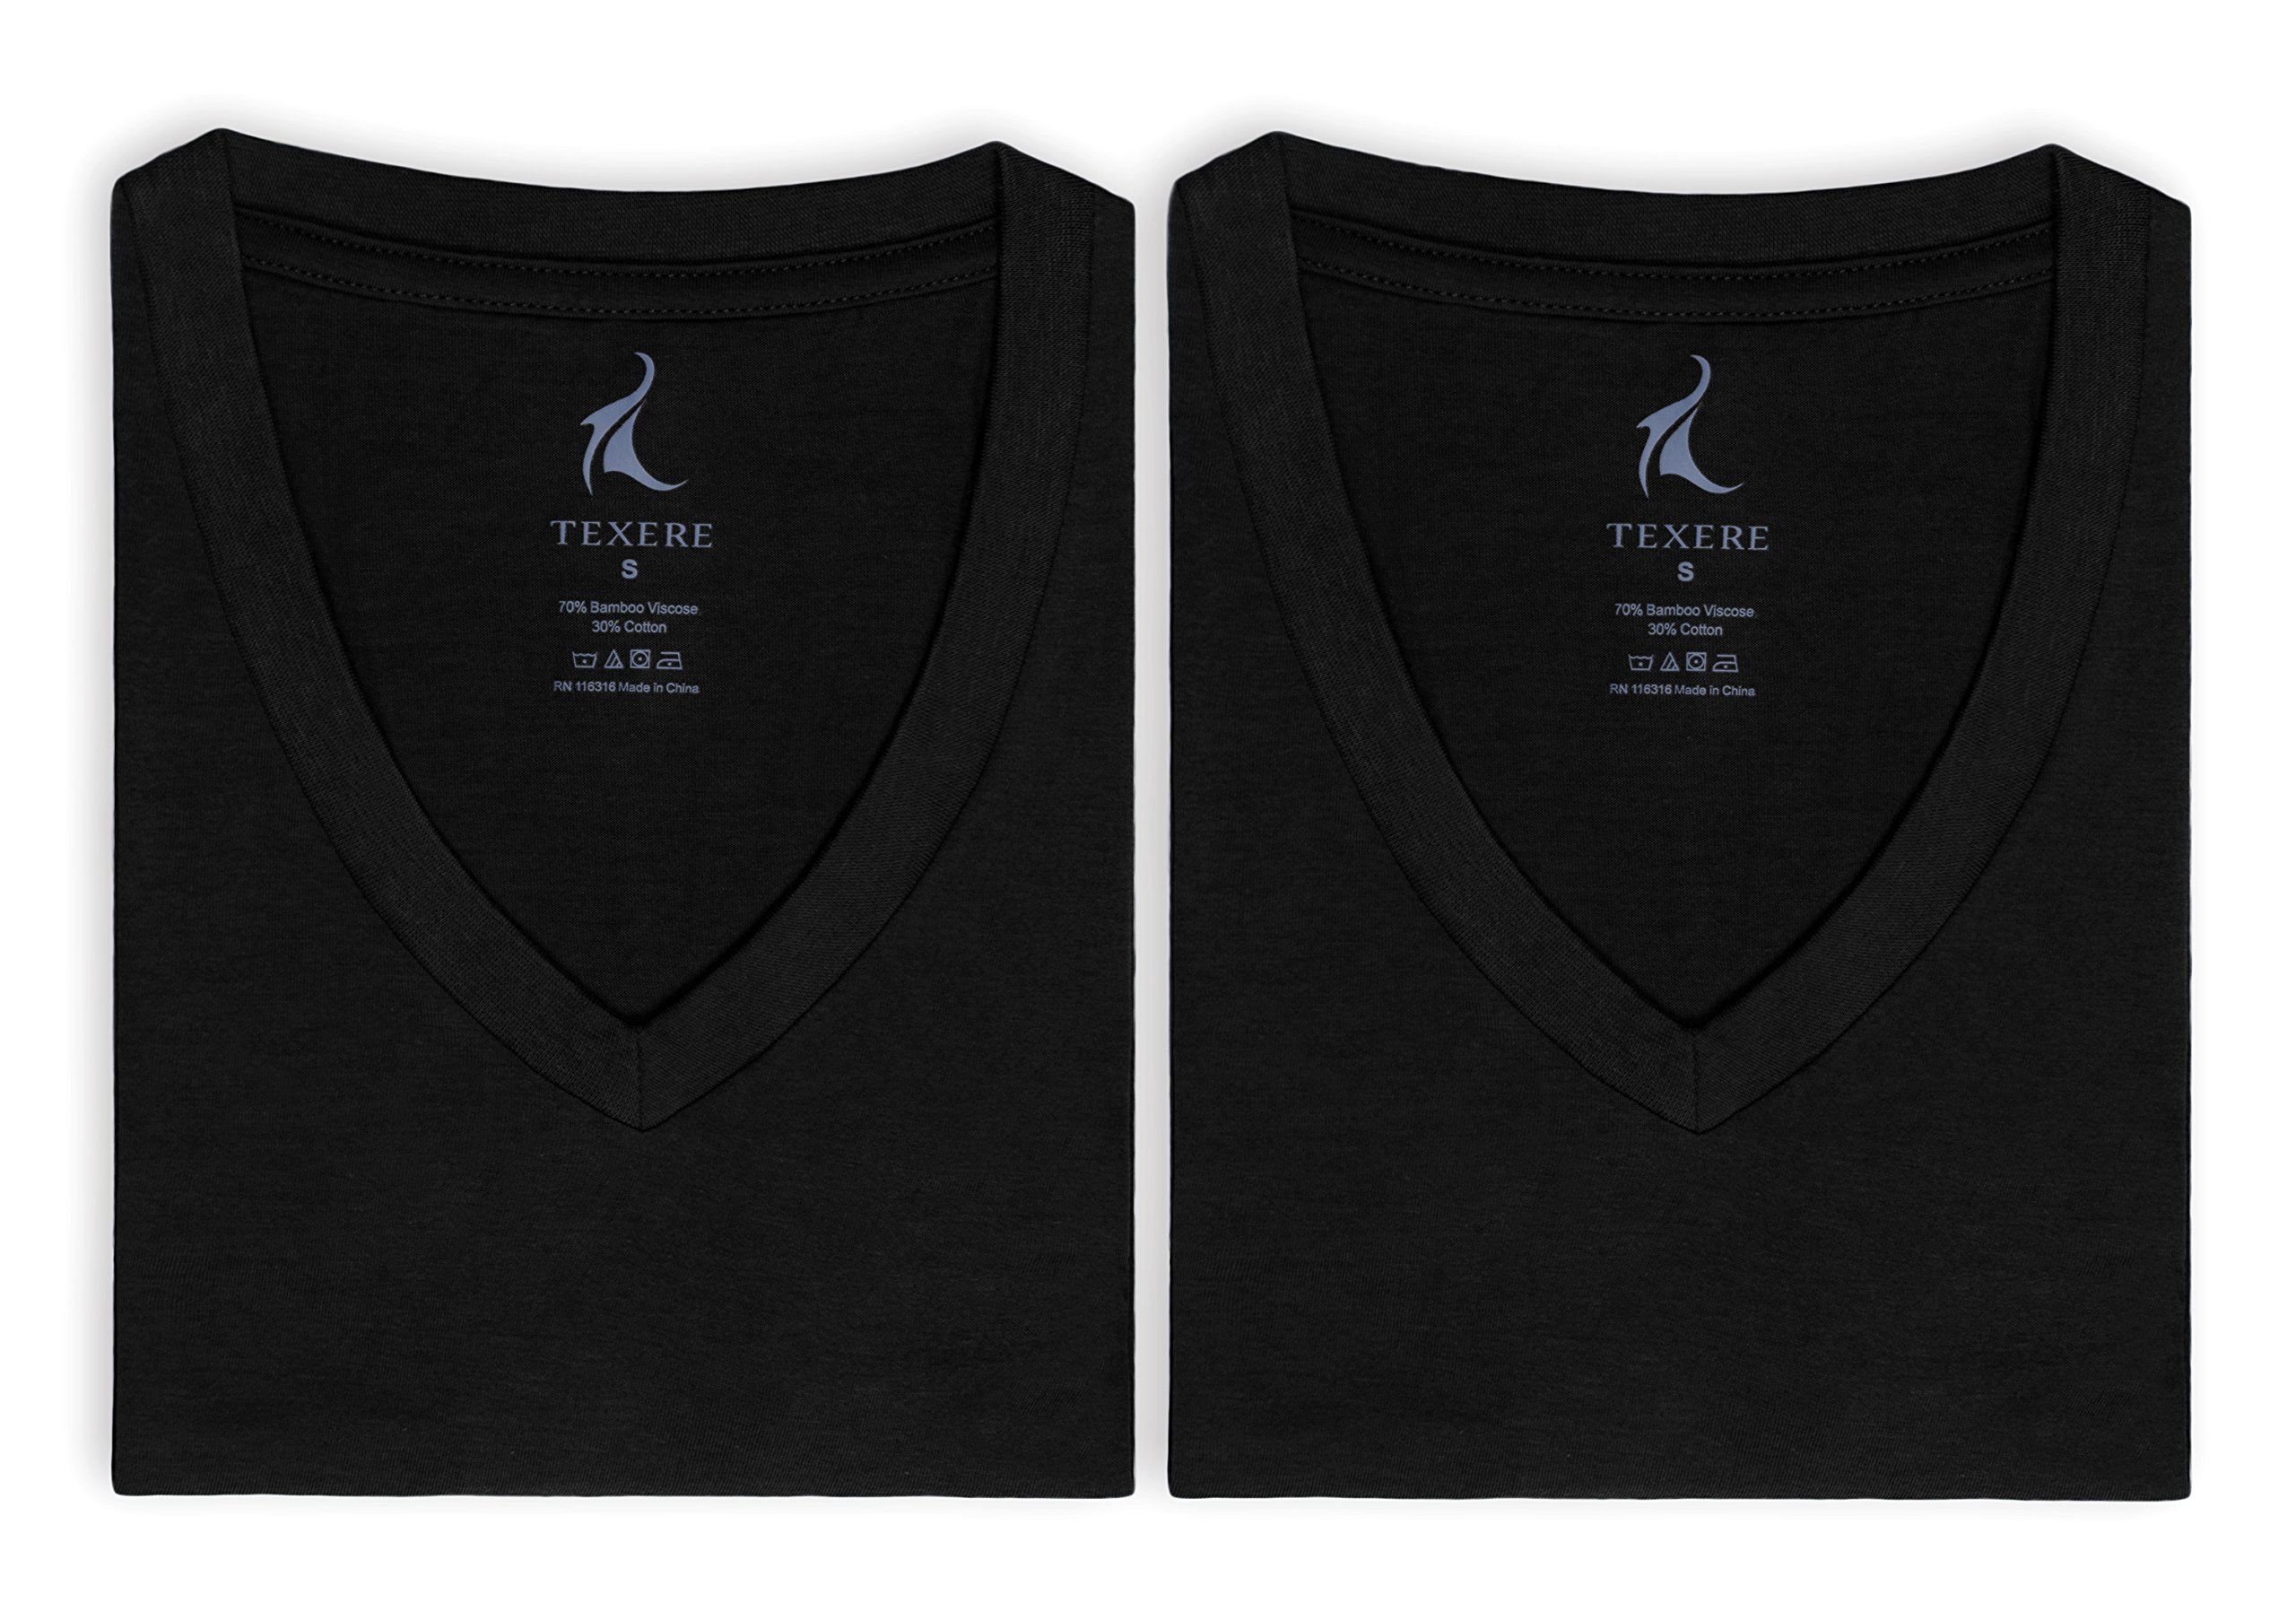 Men's V-Neck Undershirts in Bamboo Viscose - 2 Pack Shirt for Him by Texere (Black, Medium/Tall) Ideal Lightweight Plain Shirts for Guys MB6302-BLK-MT